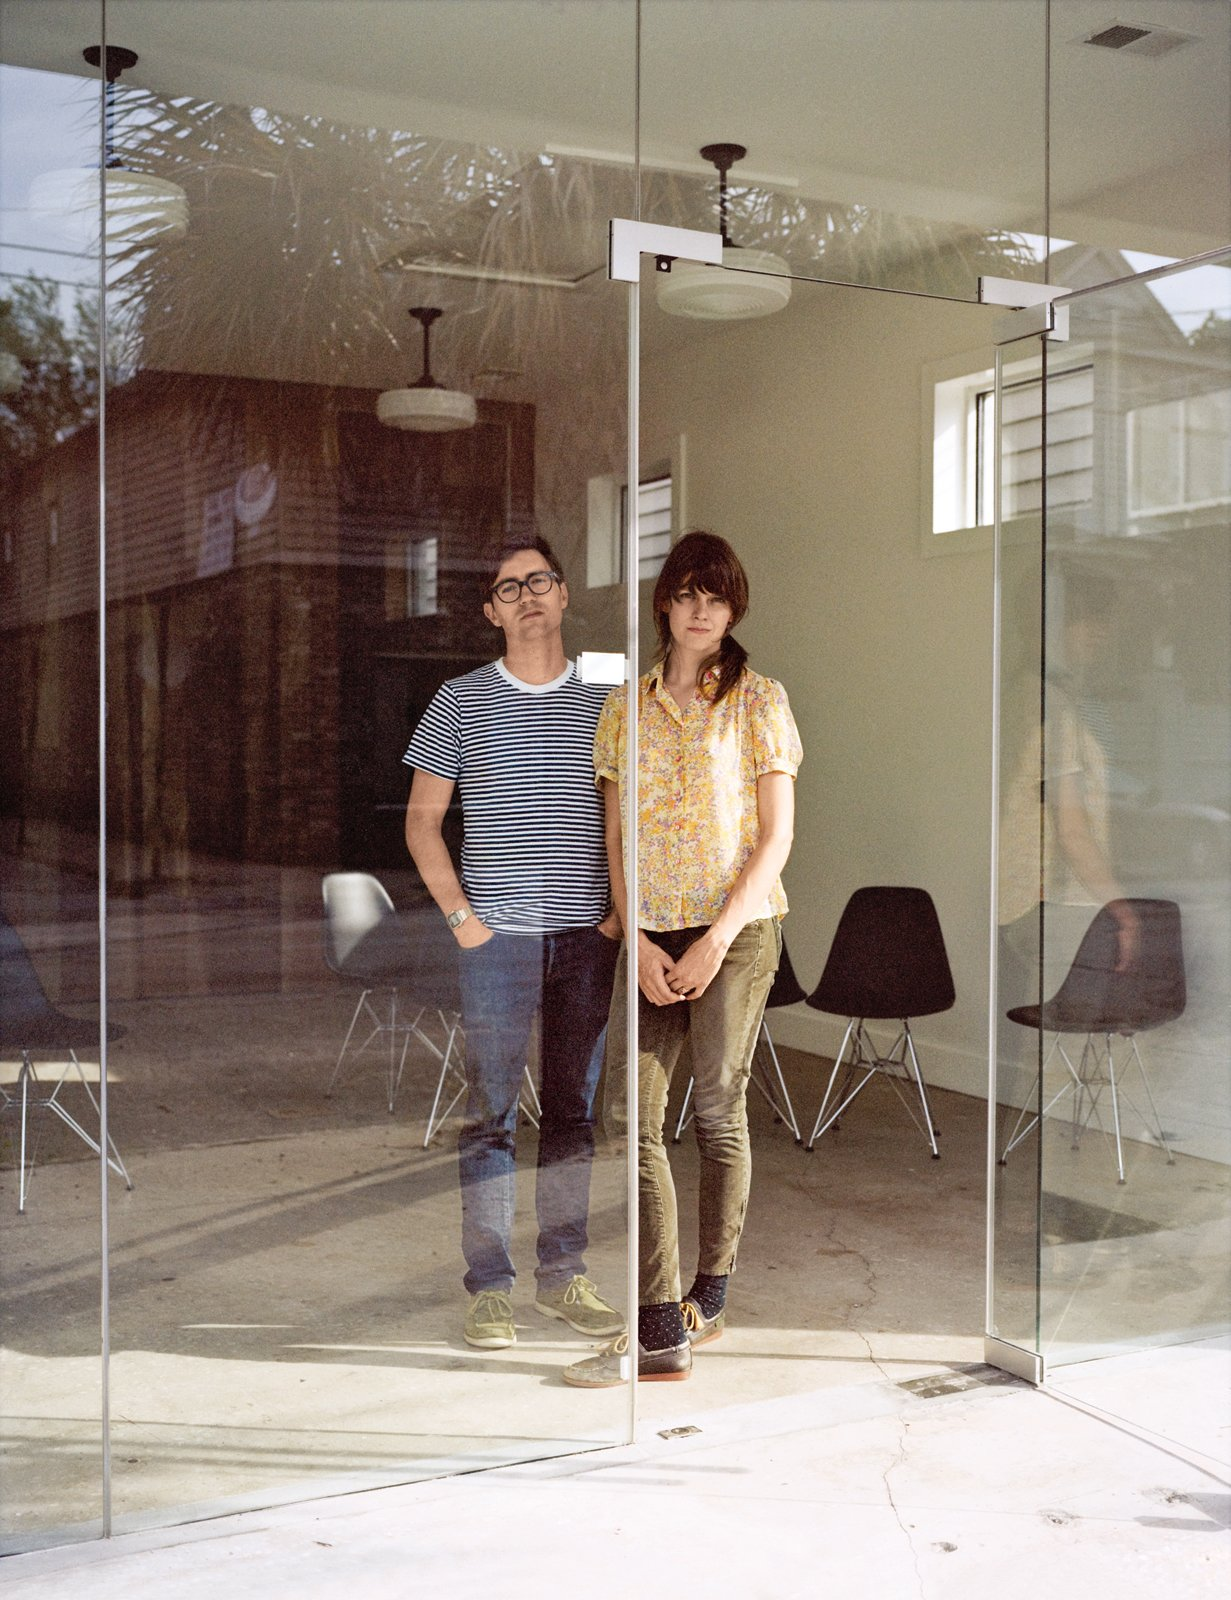 Josh Nissenboim and Helen Rice inside Fuzzco, their design firm, Fuzzco, headquartered just down the street.  Photo 17 of 18 in Raise High the Roof Beams